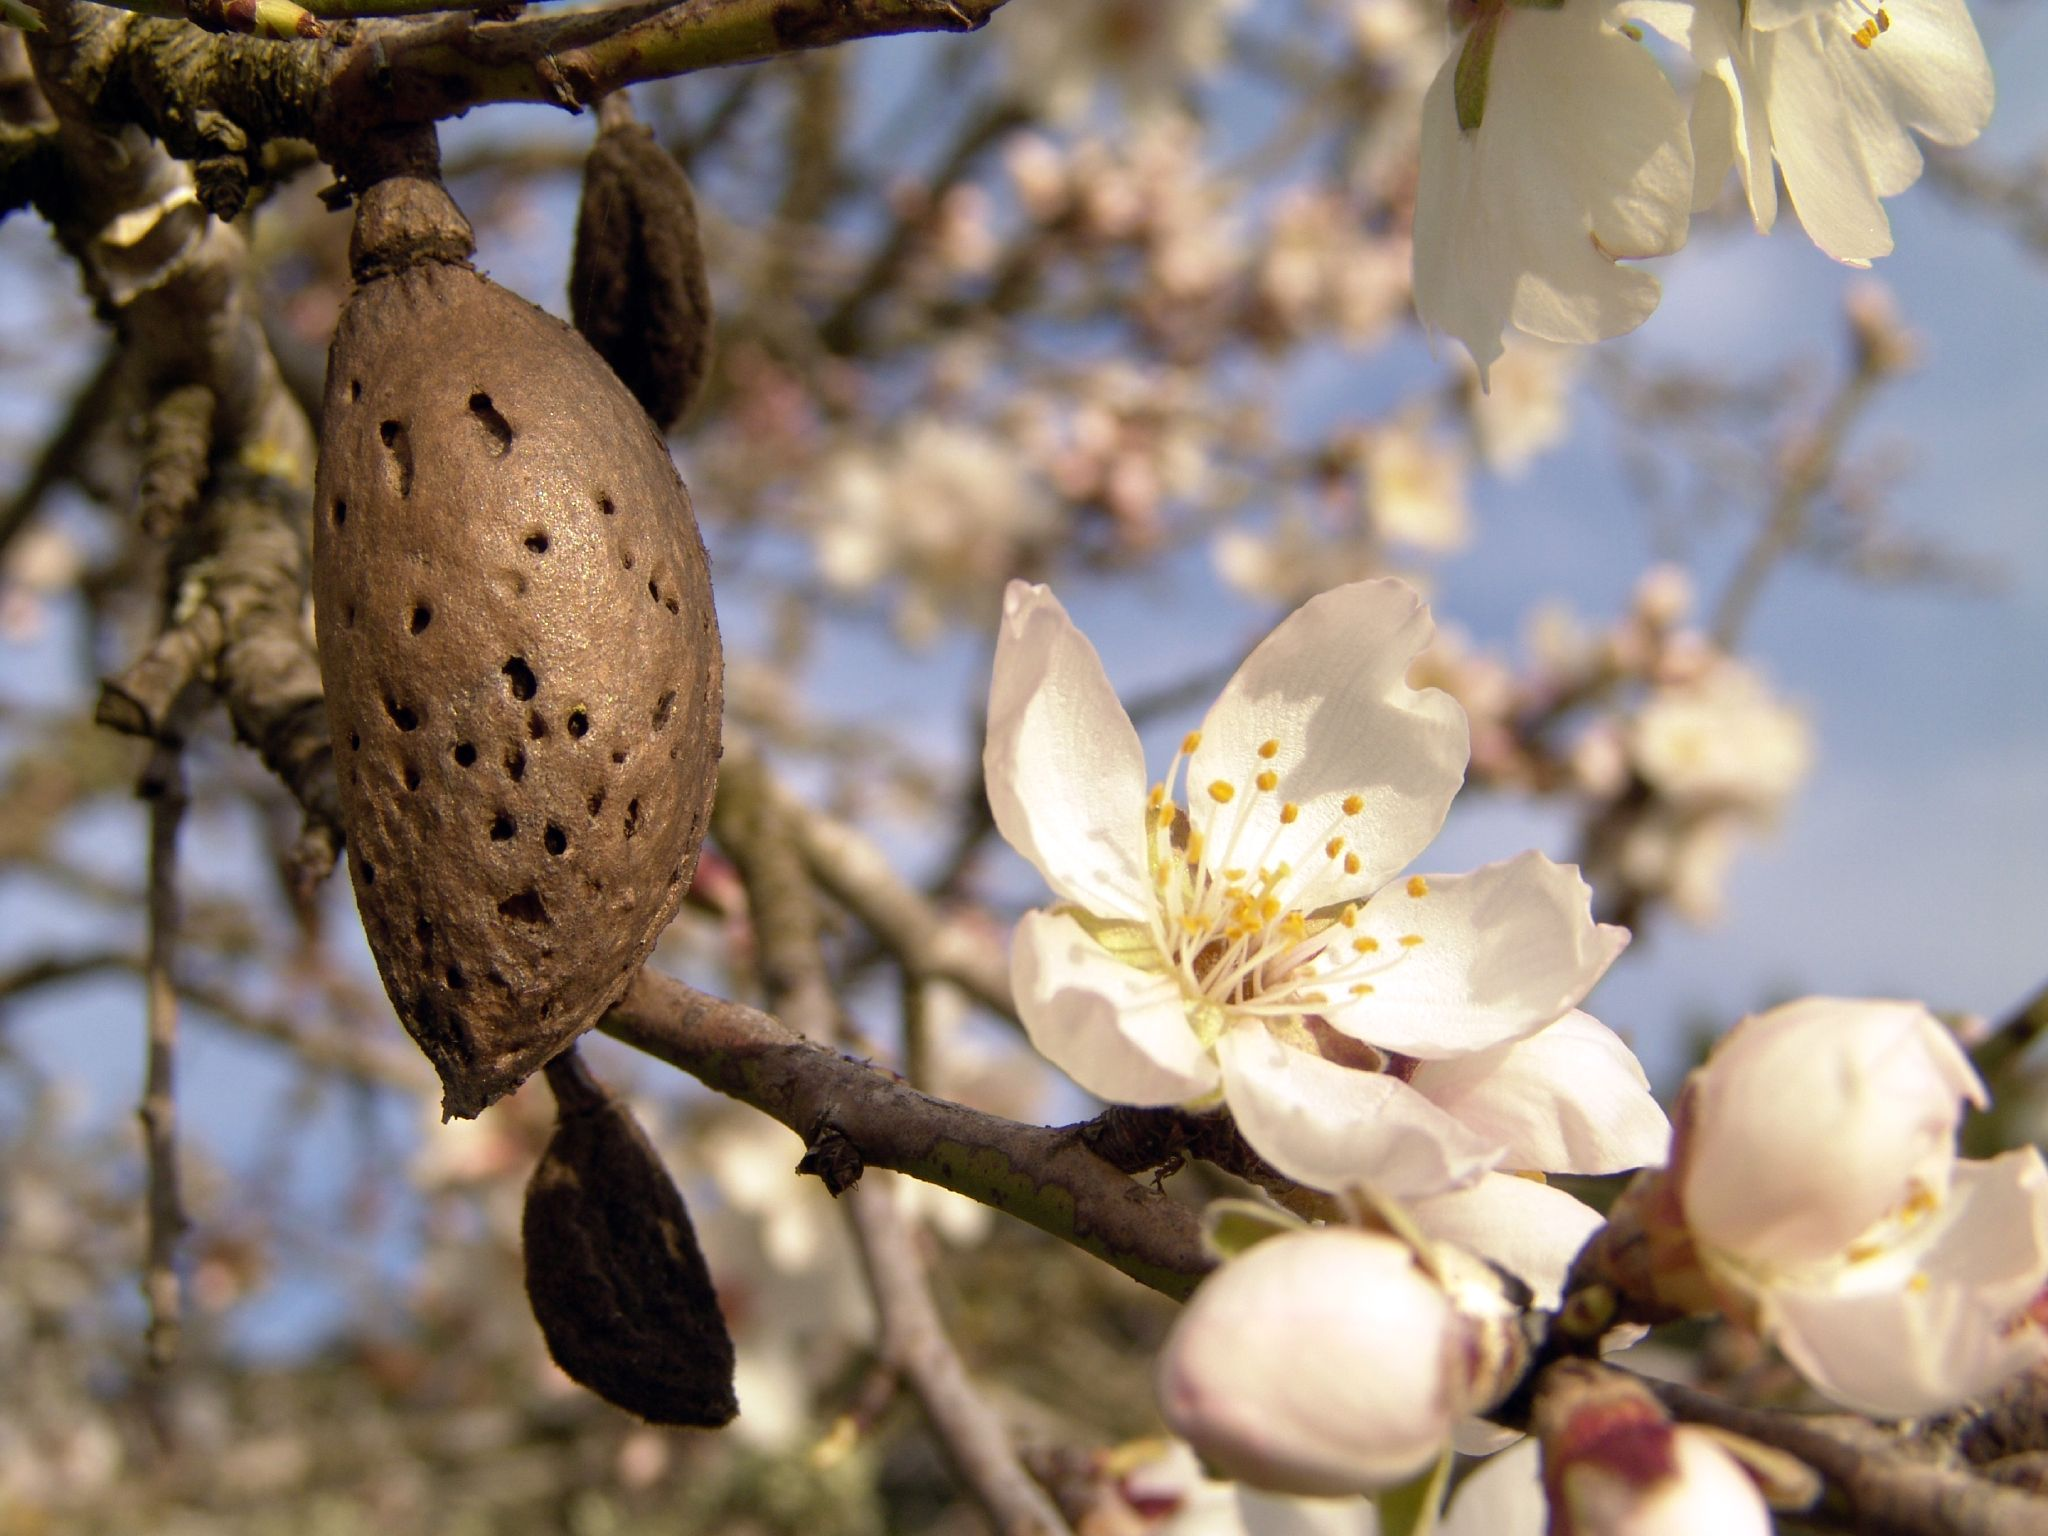 Ibiza: Almond trees in bloom